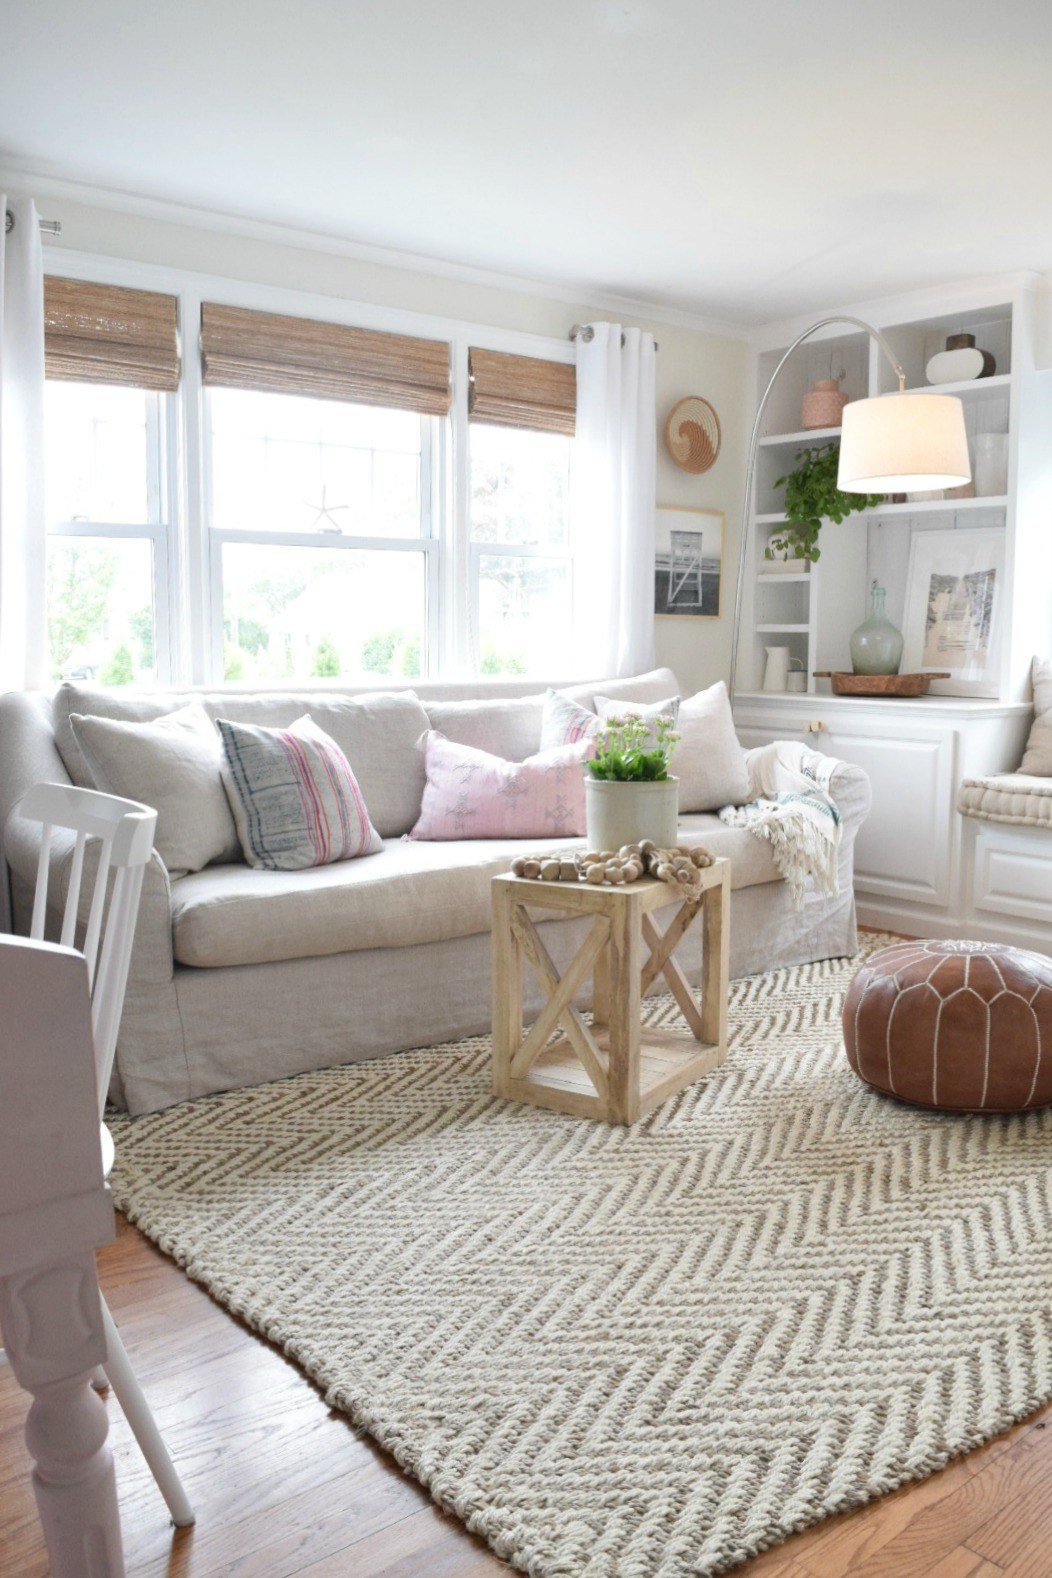 Rug for Living Room Ideas Fresh Jute Rug Review In Our Living Room Nesting with Grace